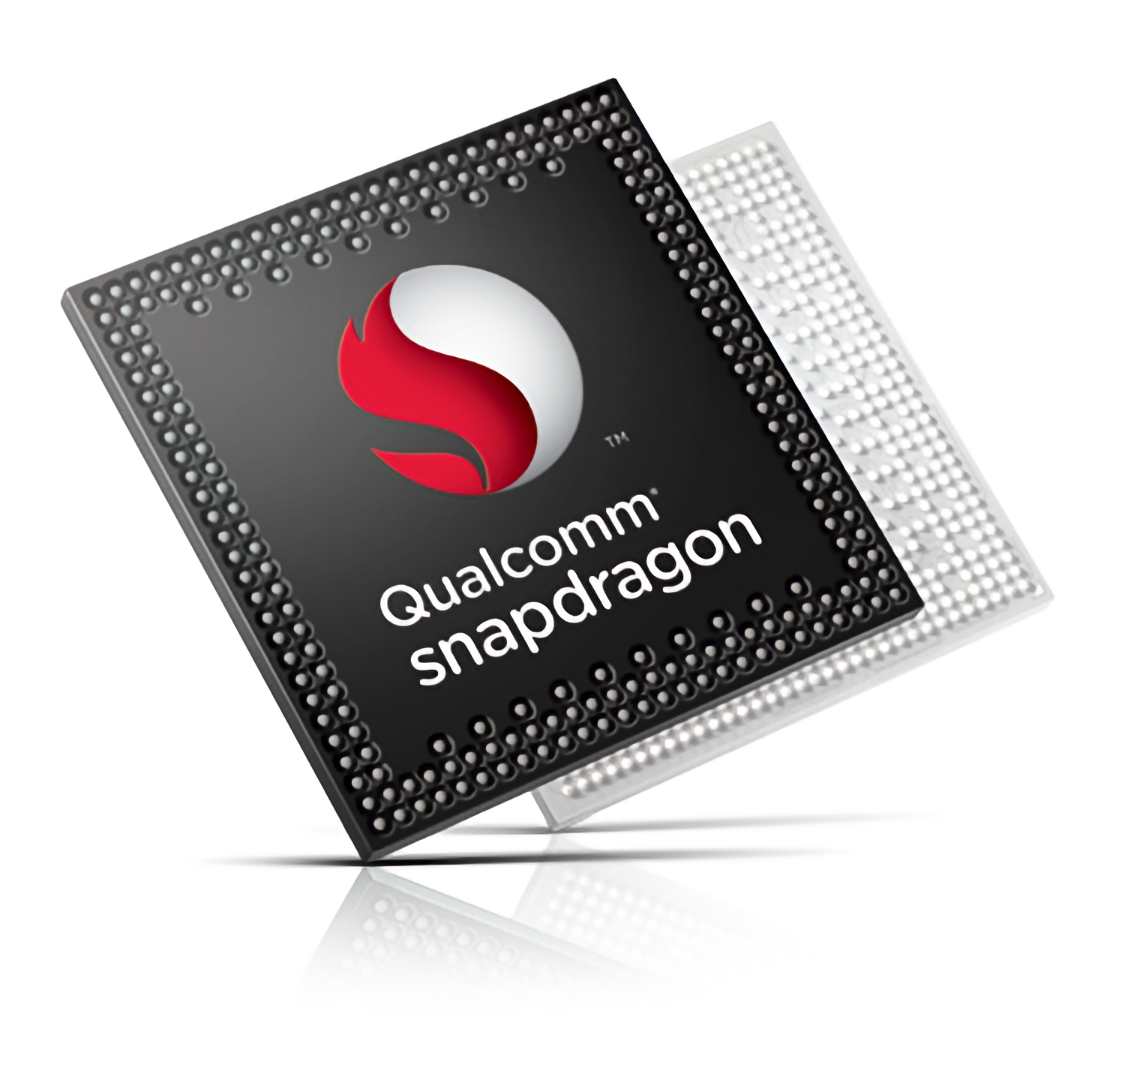 snapdragon-200-chip_0(Photo)(noise_scale)(Level2)(x3.000000)